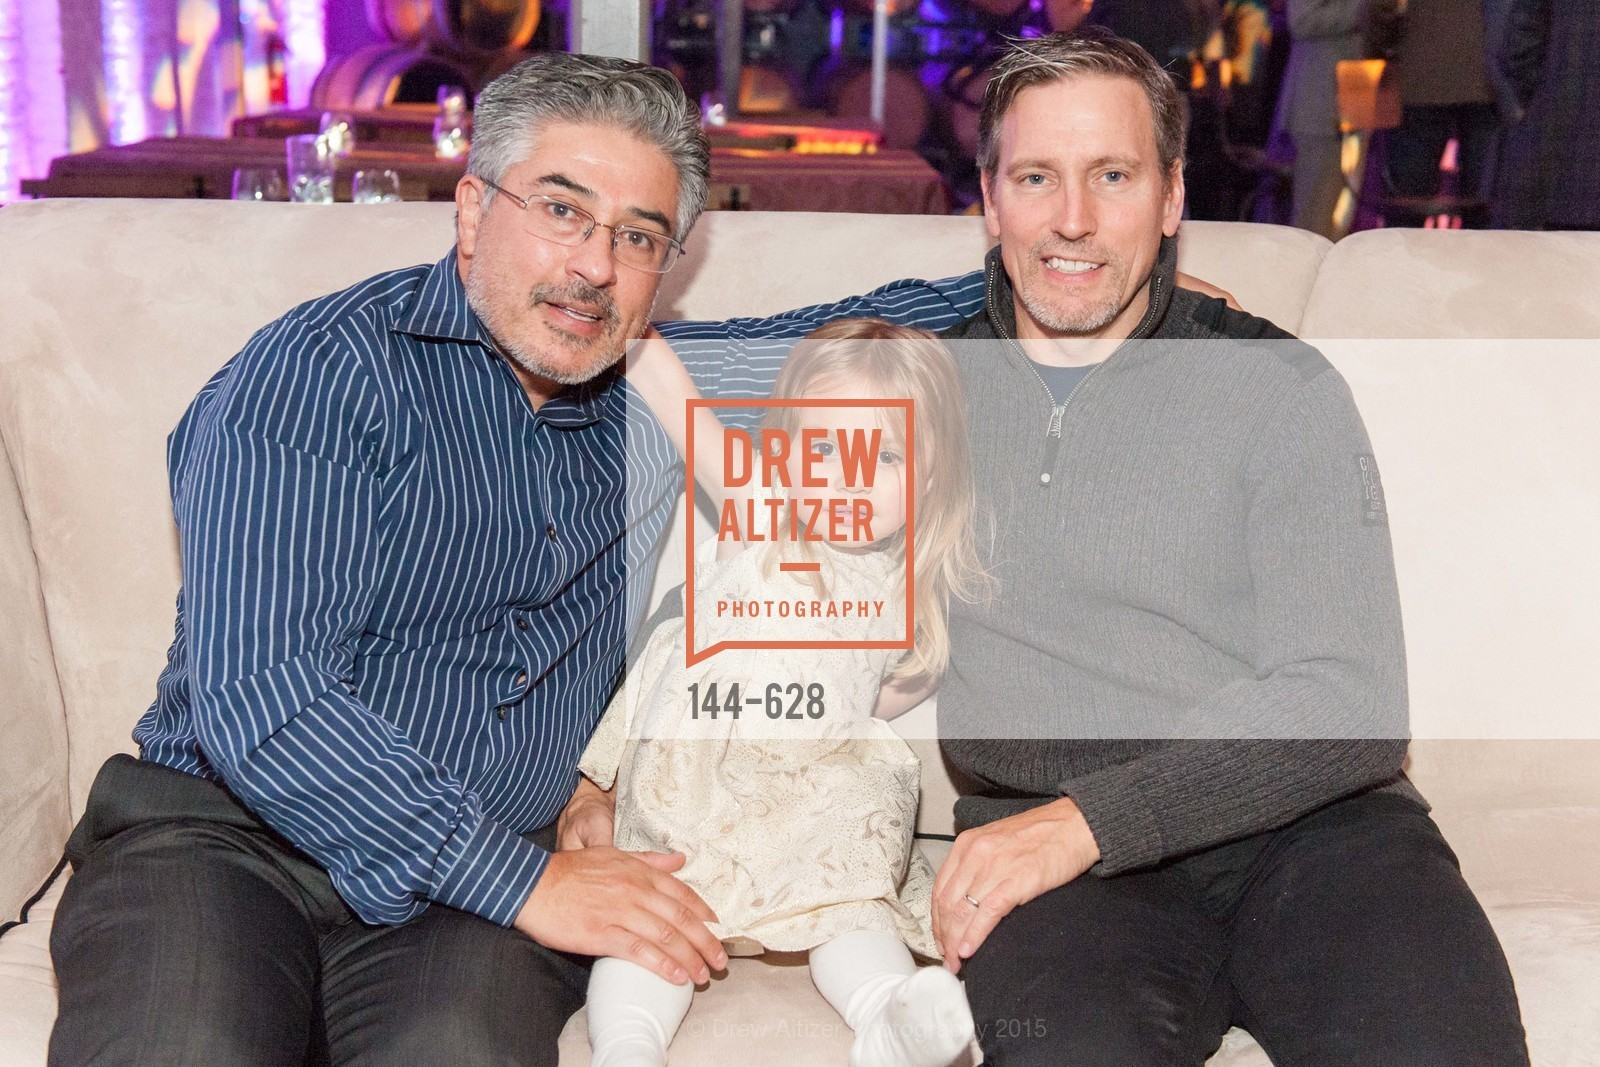 Top Picks, Gregg Lynn & Glenn Risso's Holiday Party, December 5th, 2015, Photo,Drew Altizer, Drew Altizer Photography, full-service event agency, private events, San Francisco photographer, photographer California